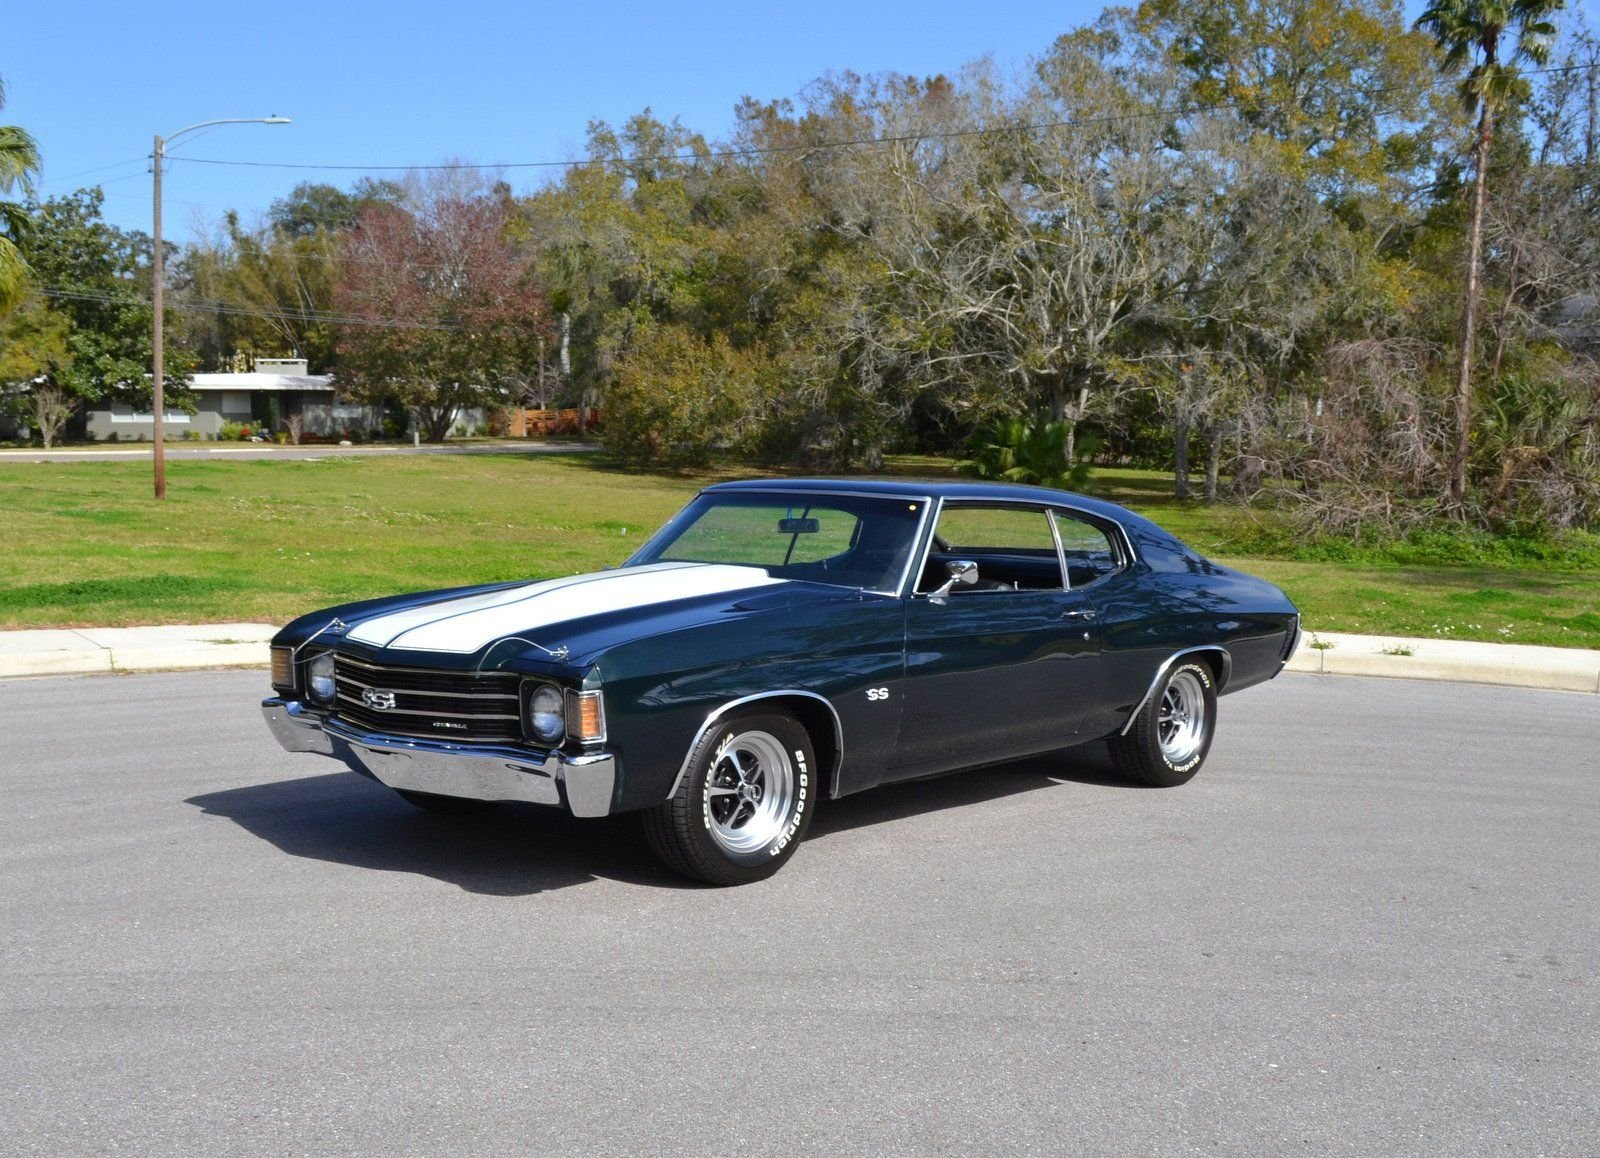 1972 chevrolet chevelle ss coupe tribute